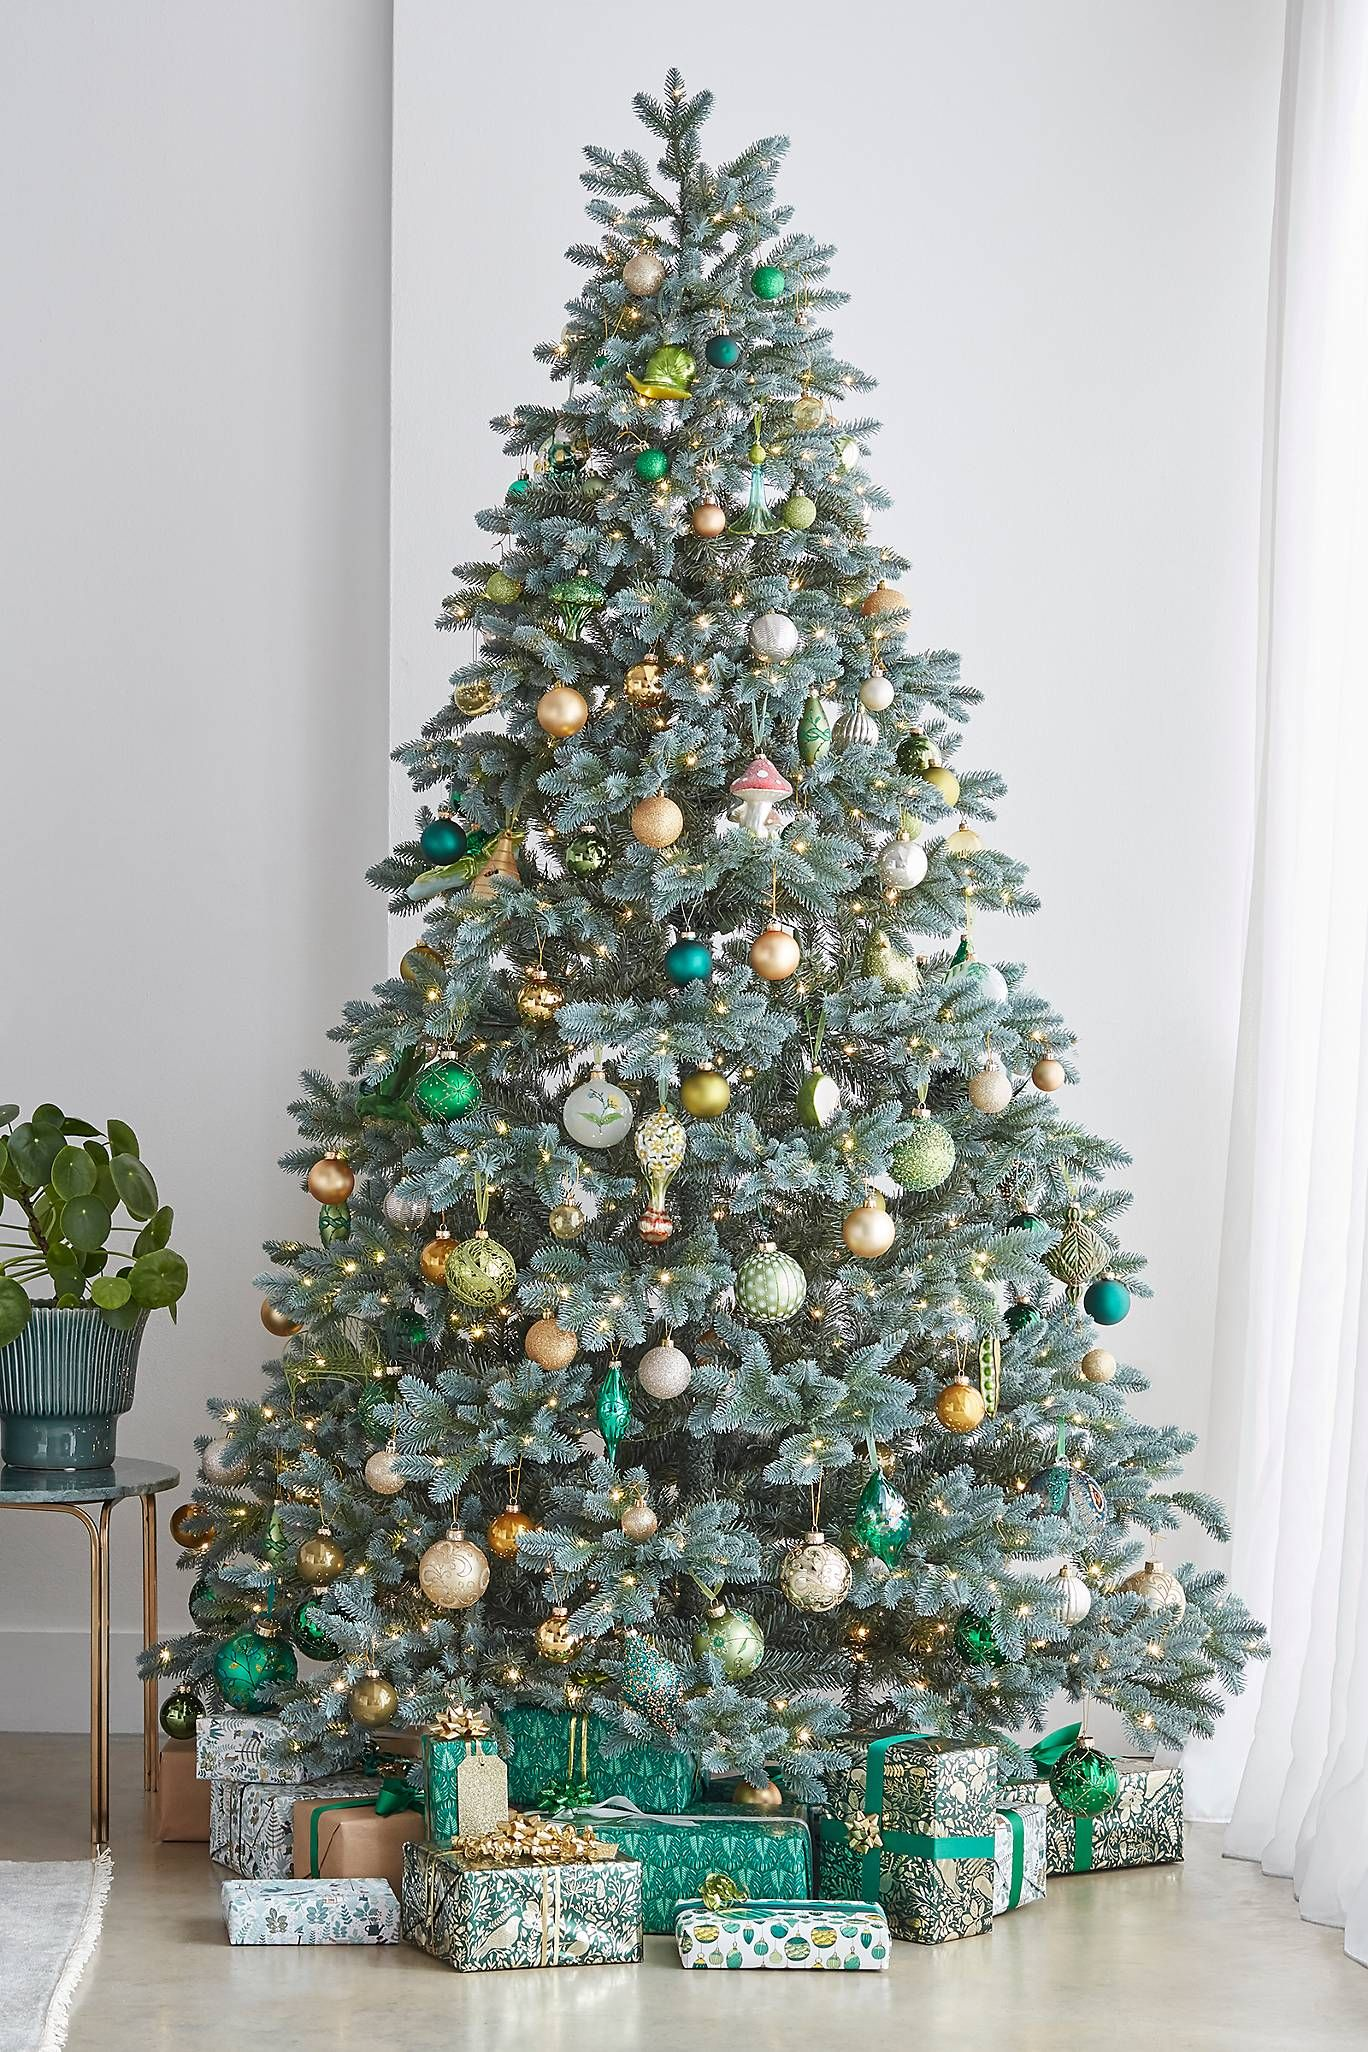 Christmas Decorating Ideas Christmas Trends John Lewis Partners In 2020 Christmas Trends Christmas Decorations Christmas Inspiration